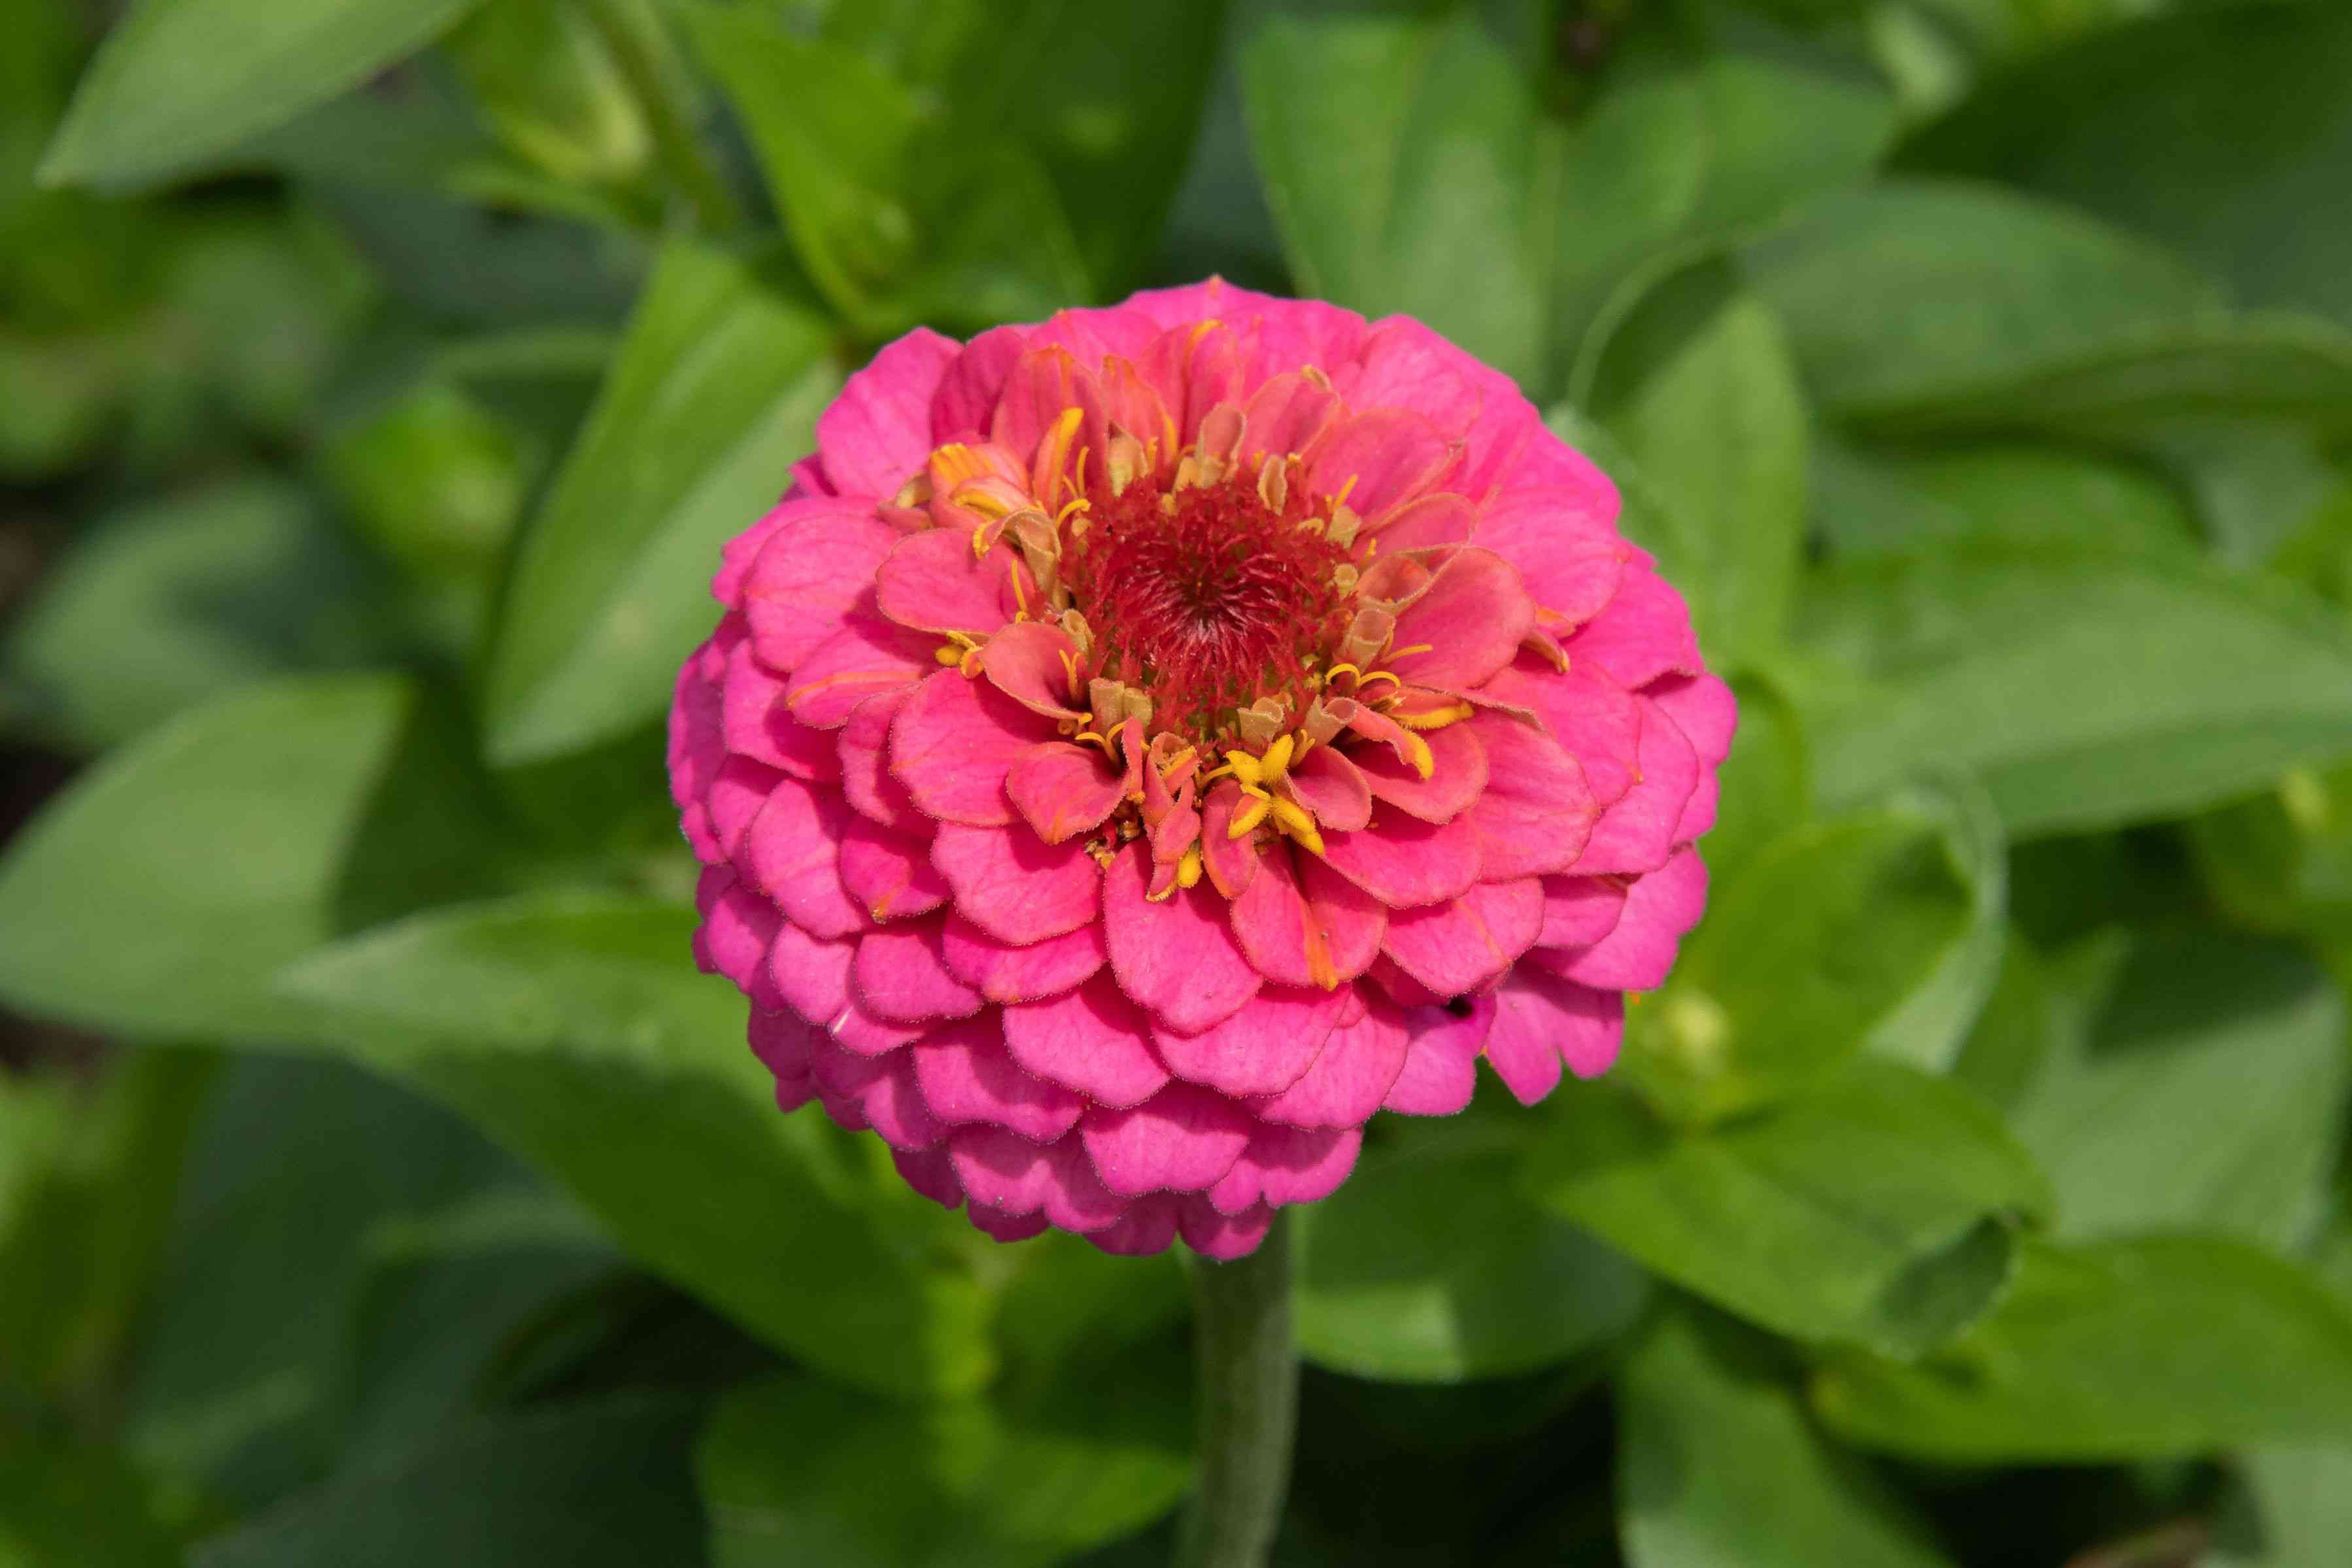 Bright pink zinnia flower with small layered petals in sunlight closeup